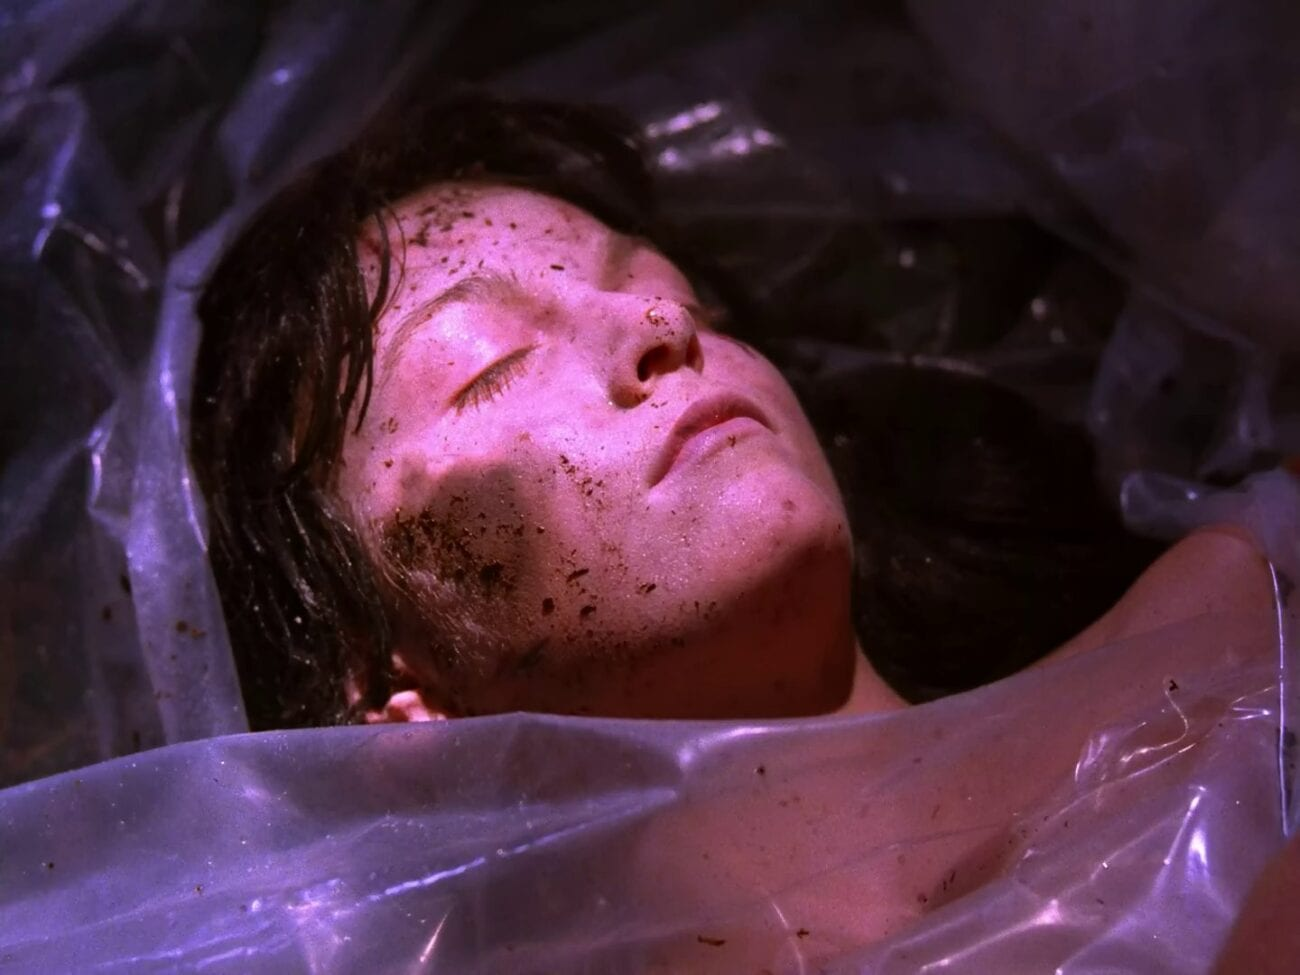 Maddy dead wrapped in plastic